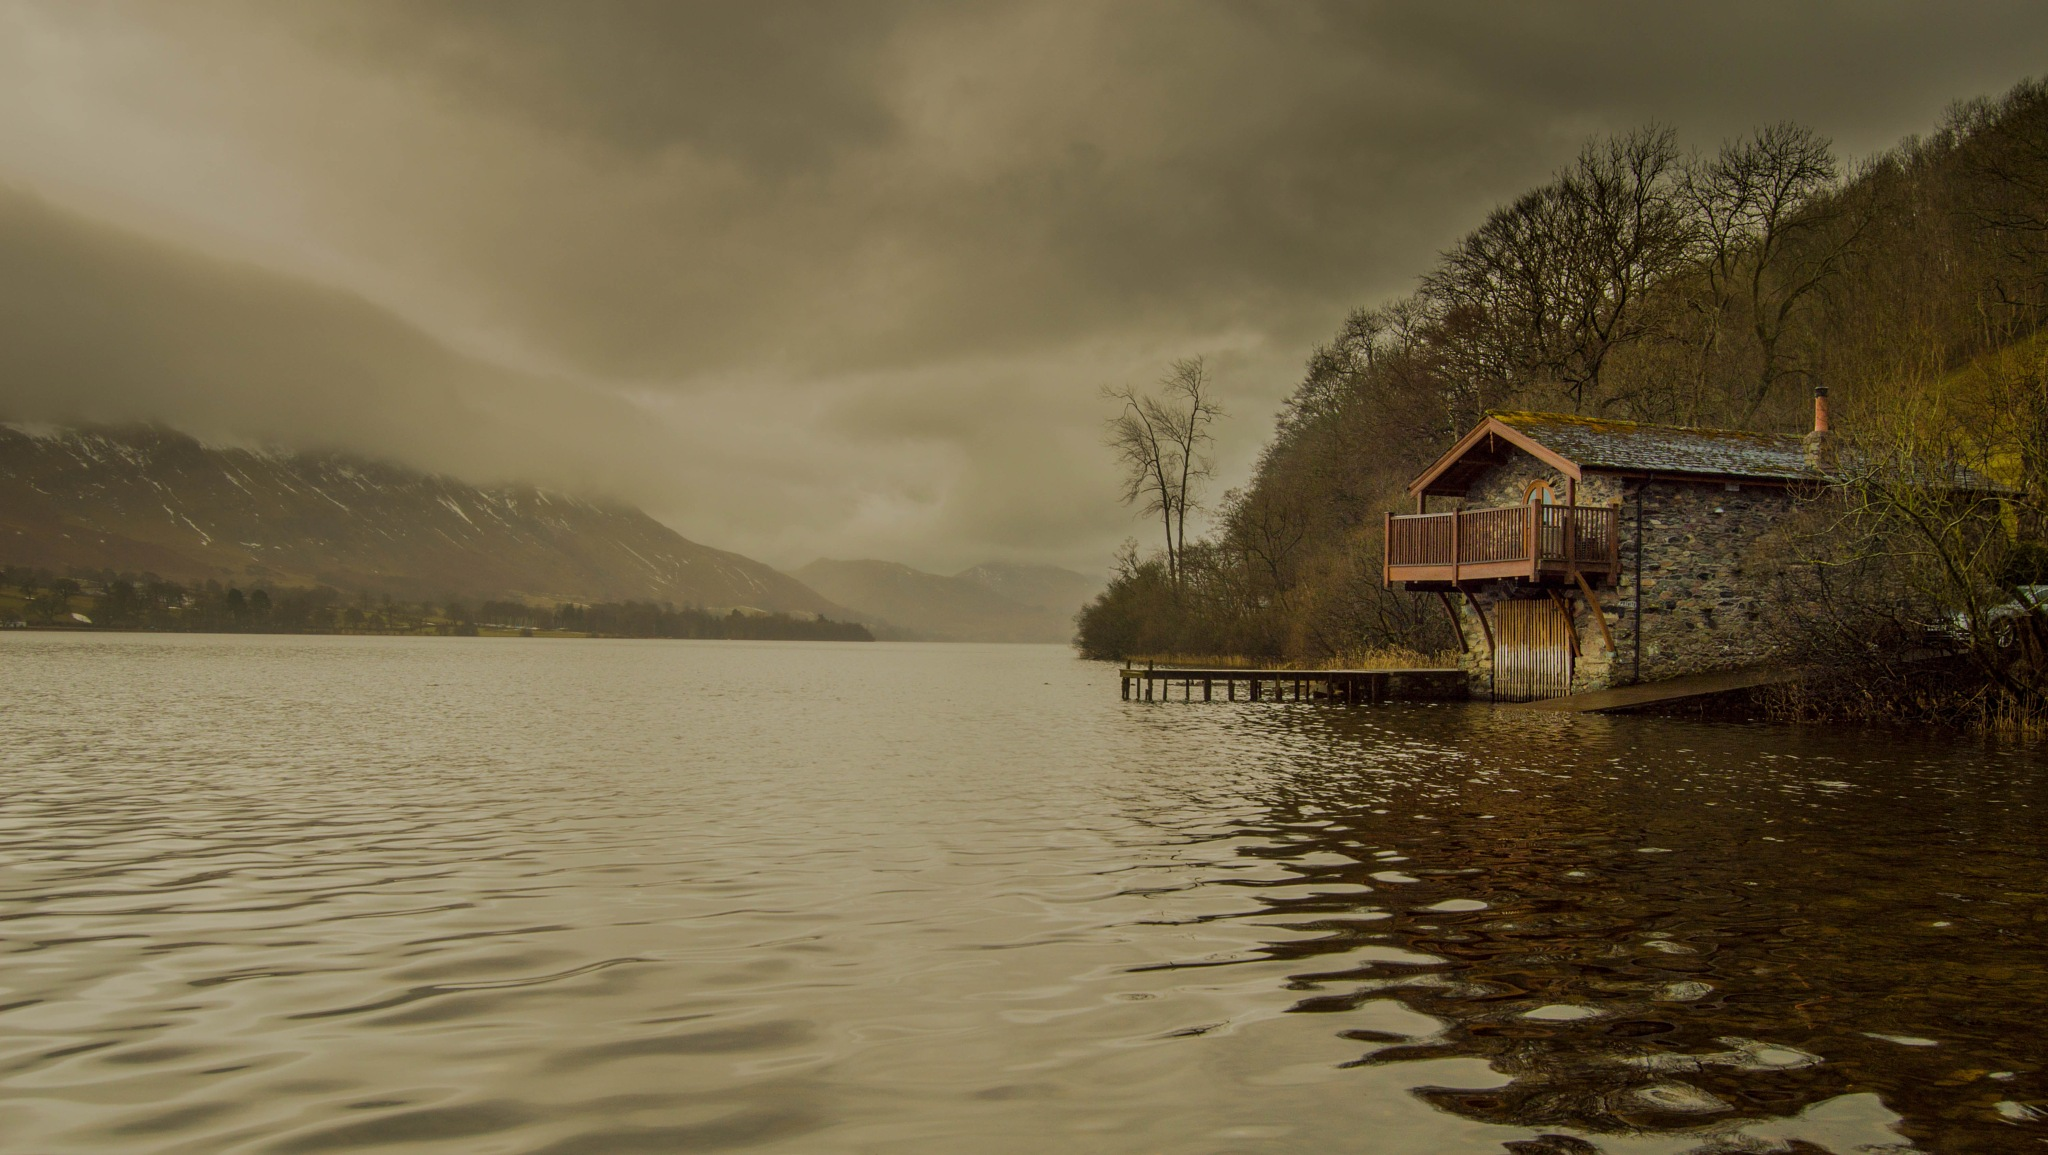 Boathouse on Ullswater,Lake District by robin.howe.56